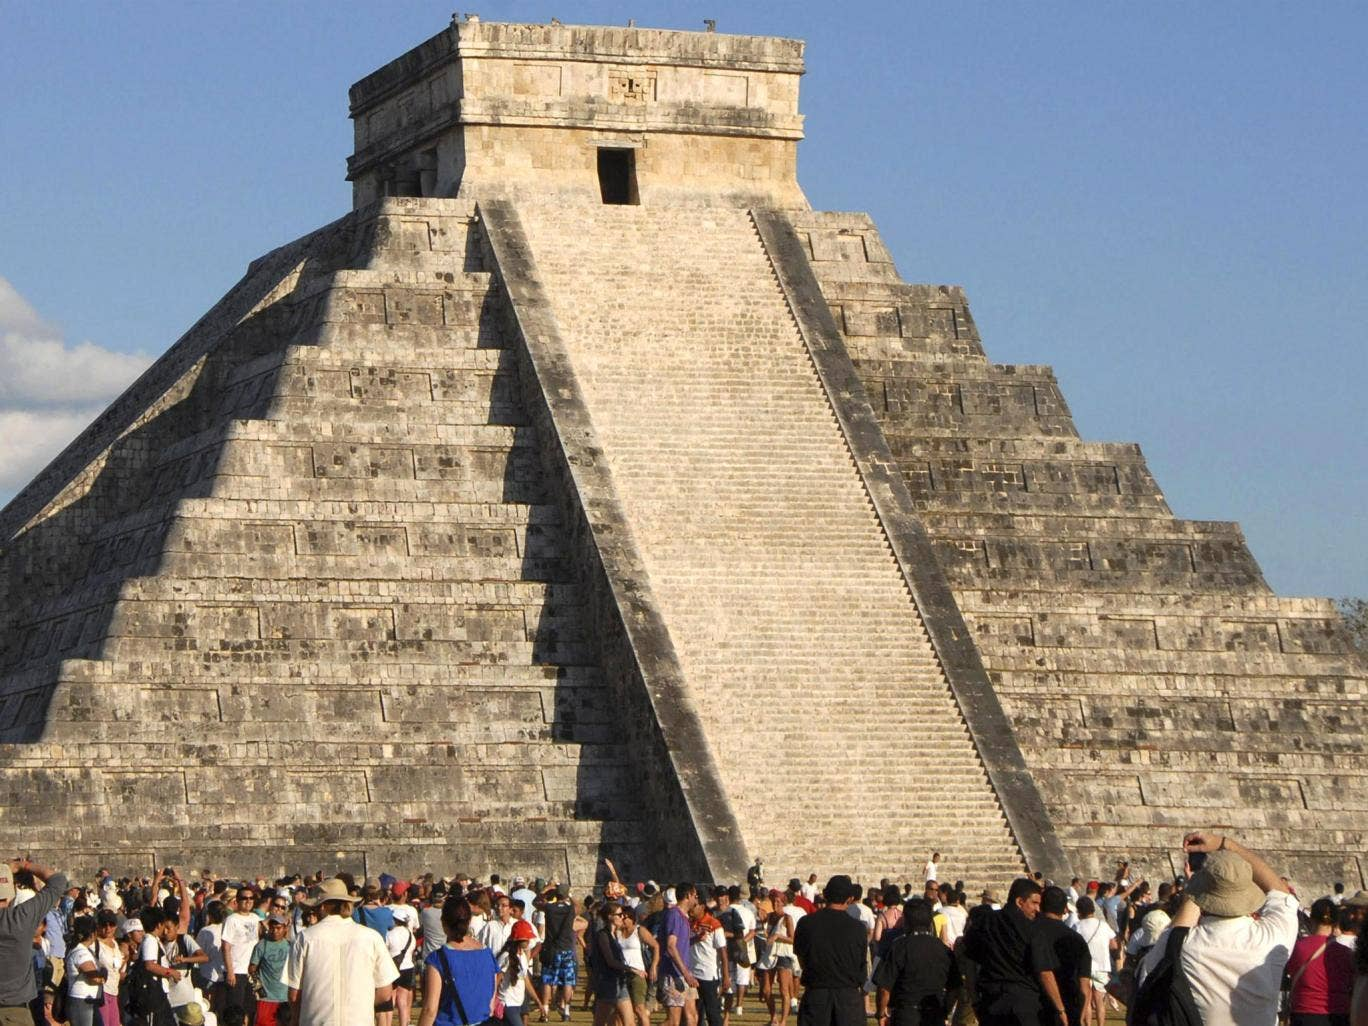 Tourists gather underneath the pyramid of Chichen Itza in Merida, southern Mexico